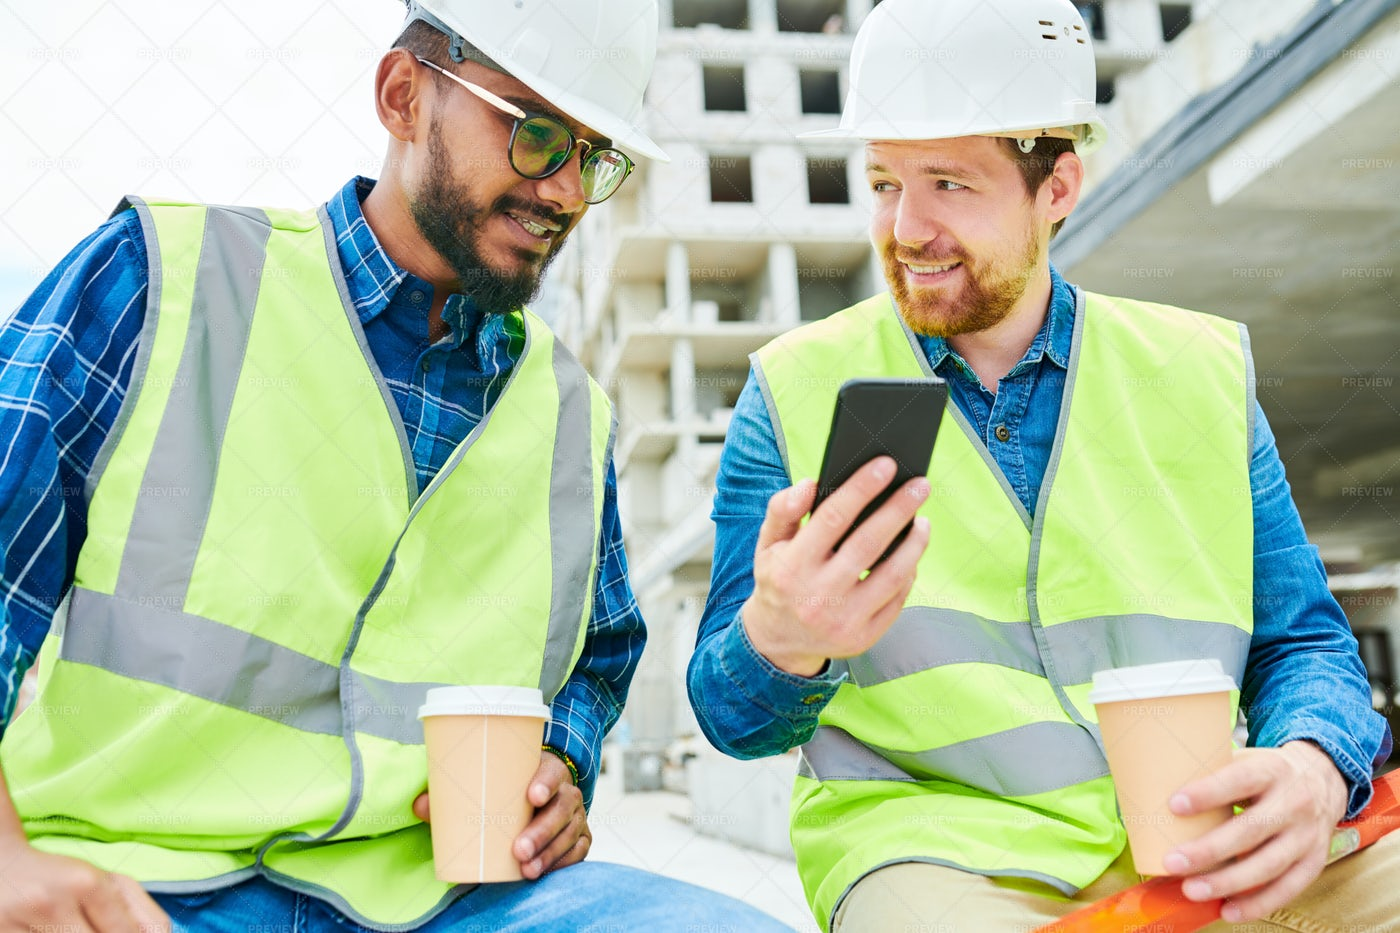 Engineer Showing Smartphone To...: Stock Photos